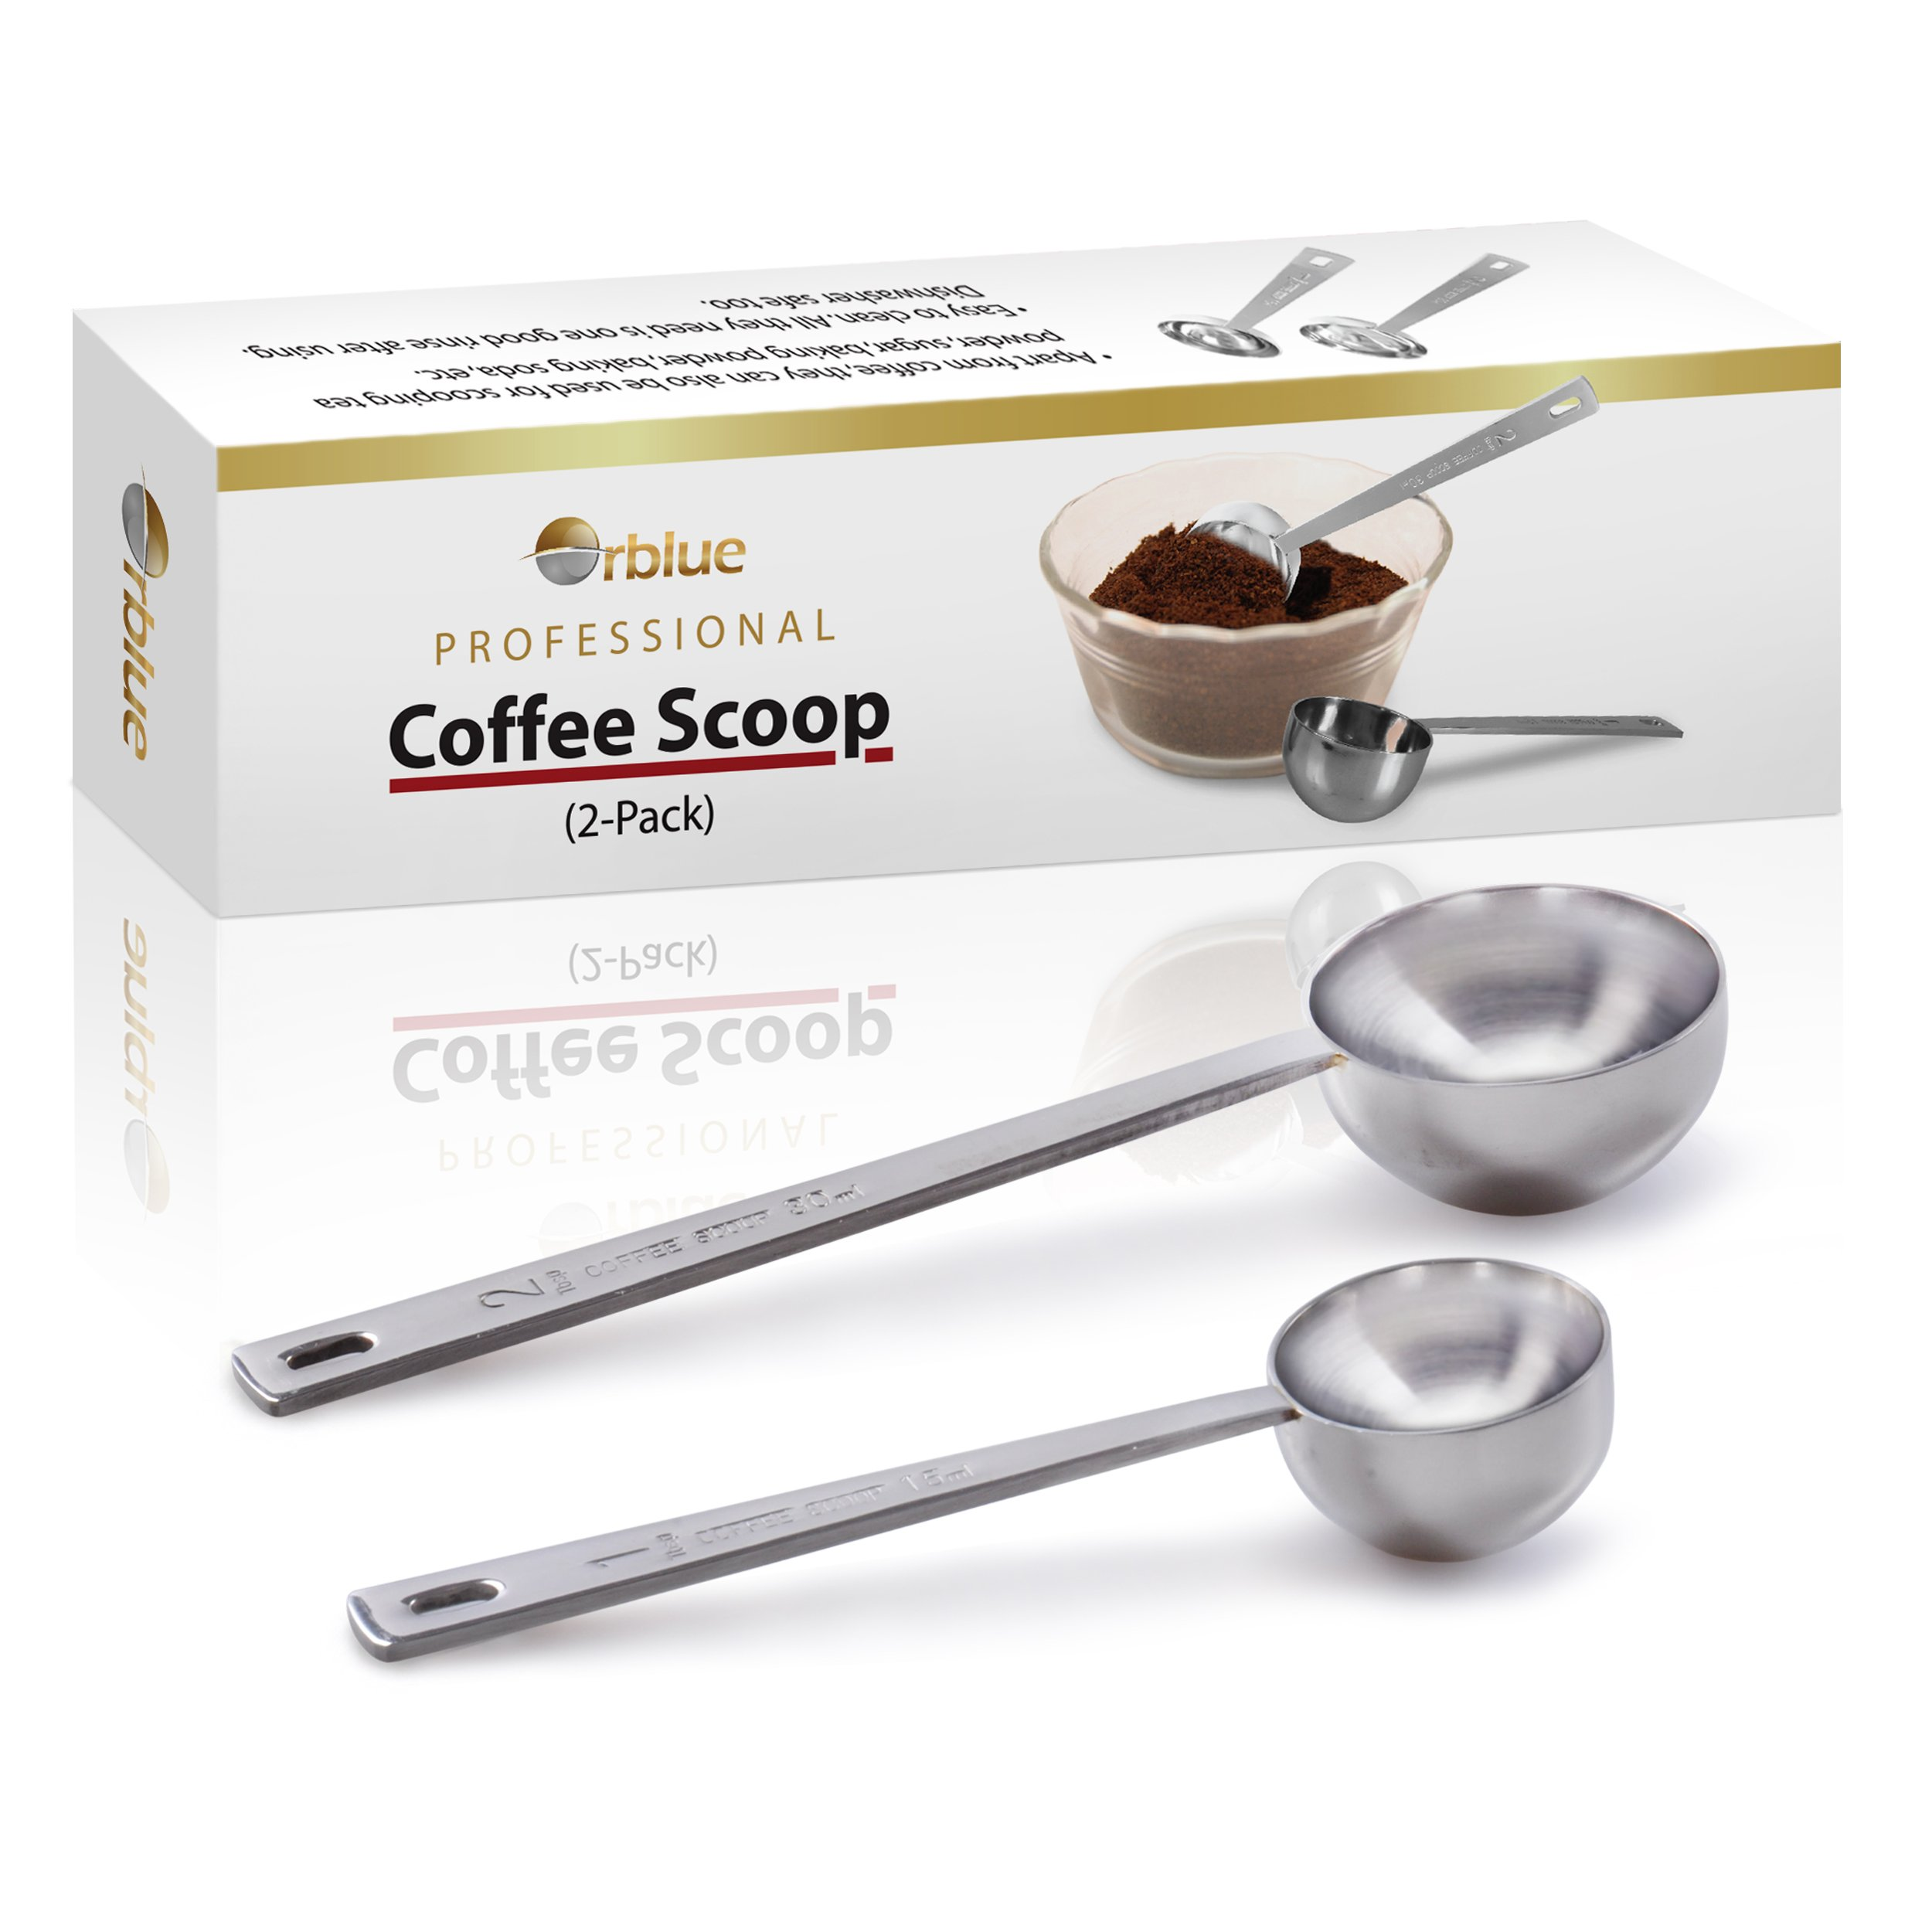 Orblue Coffee Scoop, Stainless Steel, long handled Spoons, Pack of 2 by Orblue